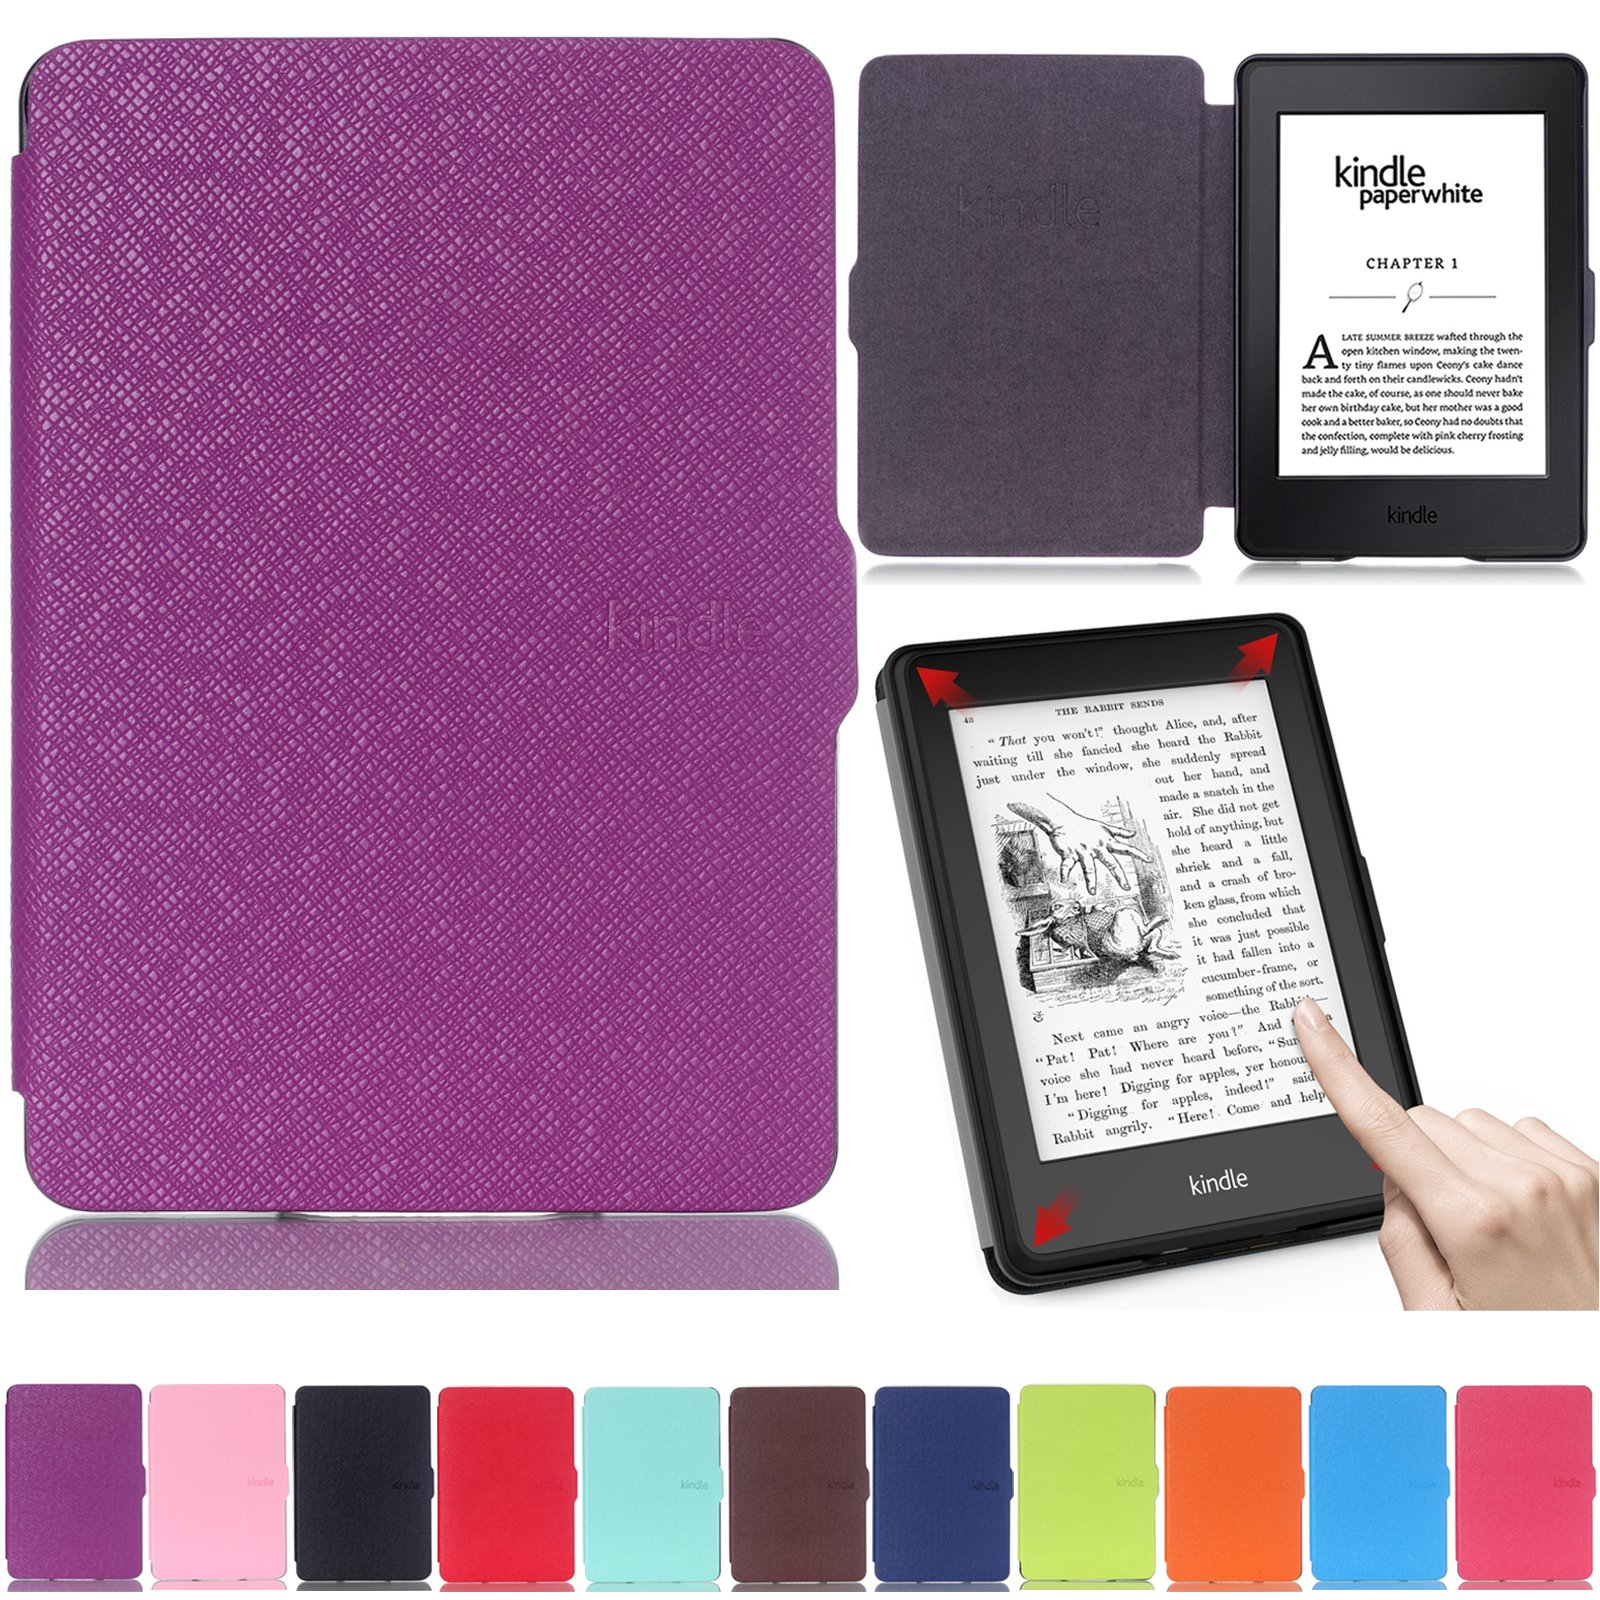 Artyond Kindle Paperwhite Case,The Thinnest and Lightest PU Leather Case with Auto Wake/Sleep Feature Smart Cover for Amazon Kindle Paperwhite (Fits All 2012, 2013, 2015 and 2016 Versions) (Purple)